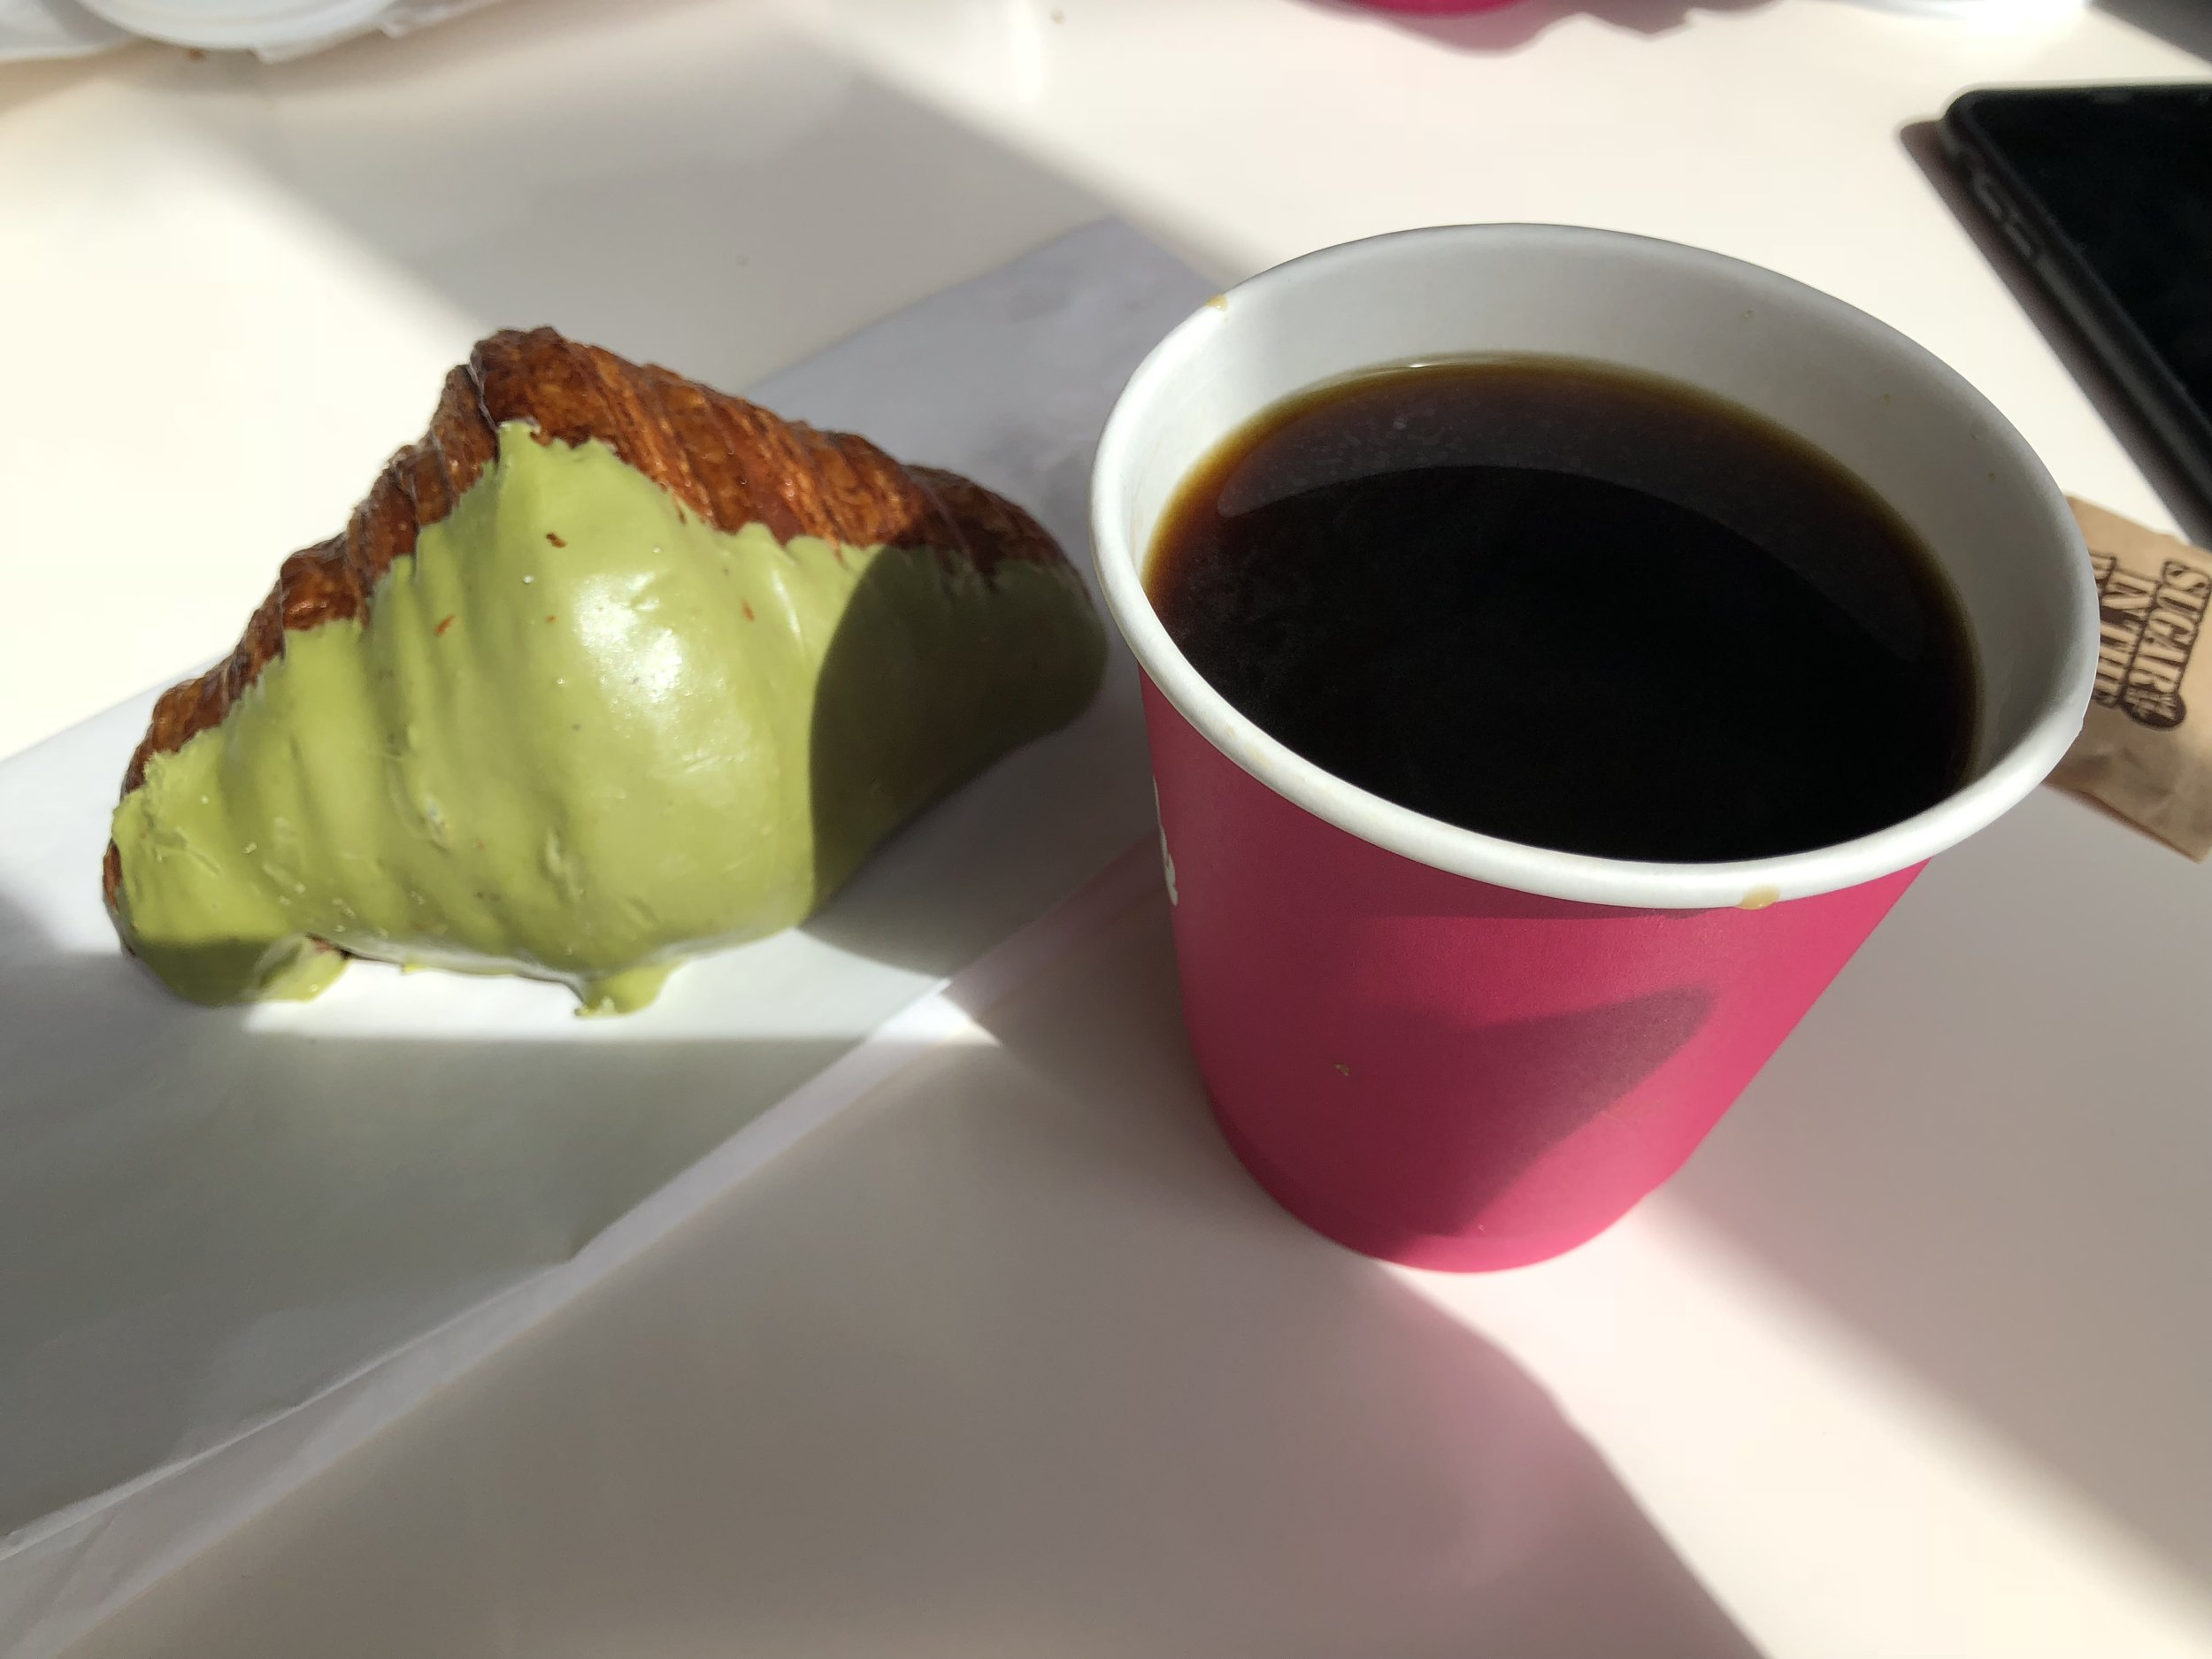 Sometimes only doughnuts and pastries will do, so it's worth getting the best if you're gonna give in to the cravings. Head to  Mr   Holmes Bakehouse  for just that. When I went I missed out on the famous cruffins, but this matcha dipped croissant was insane, as was the creme brulee one.